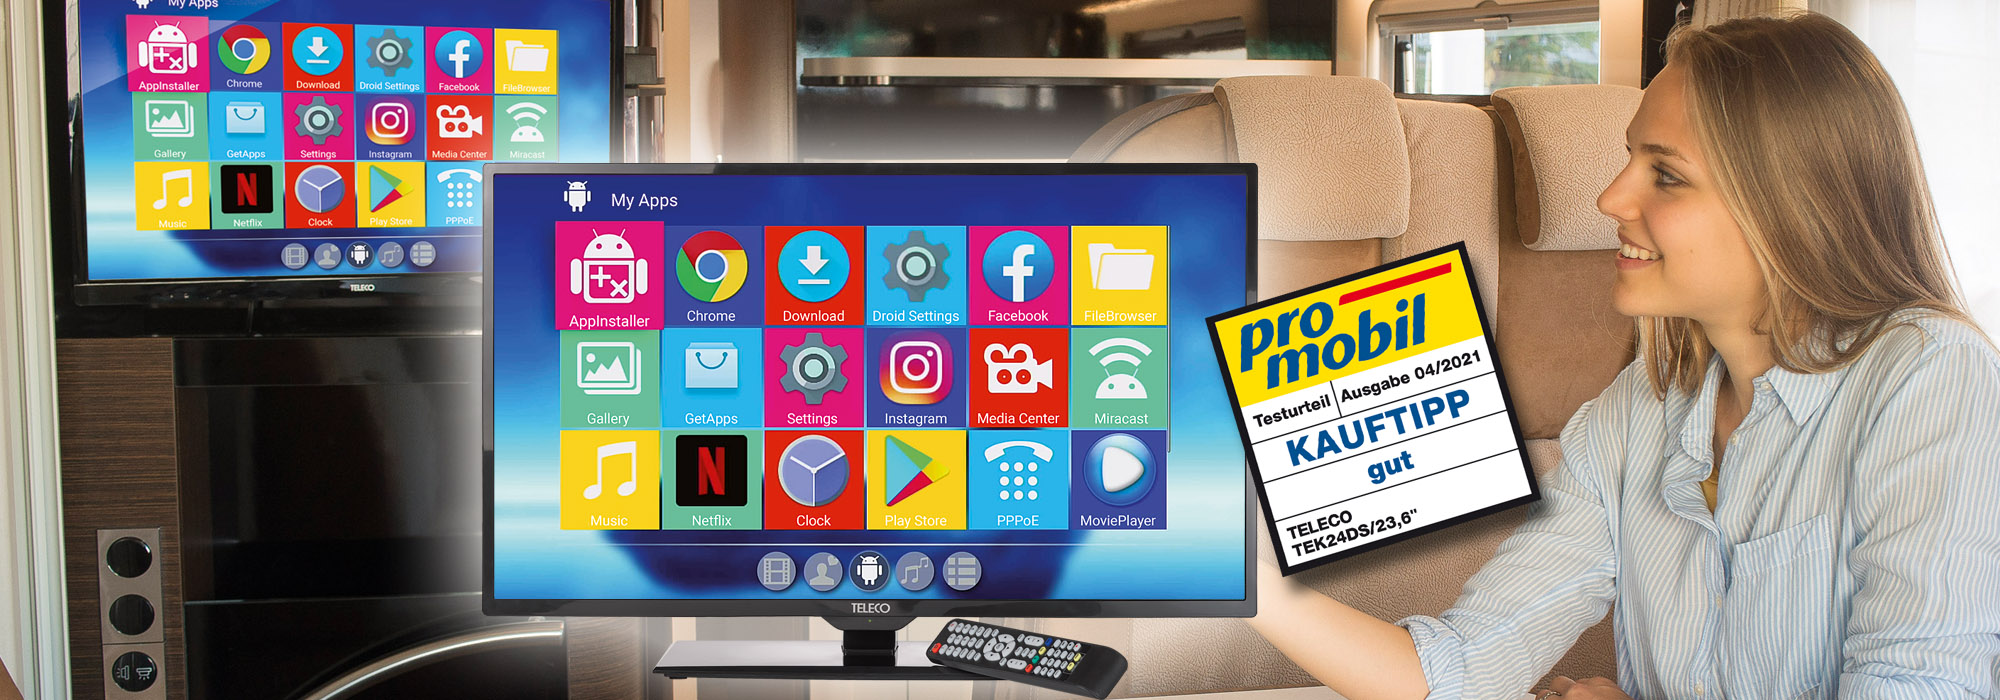 Teleco's SMART TV wins a place on the podium in promobil tests